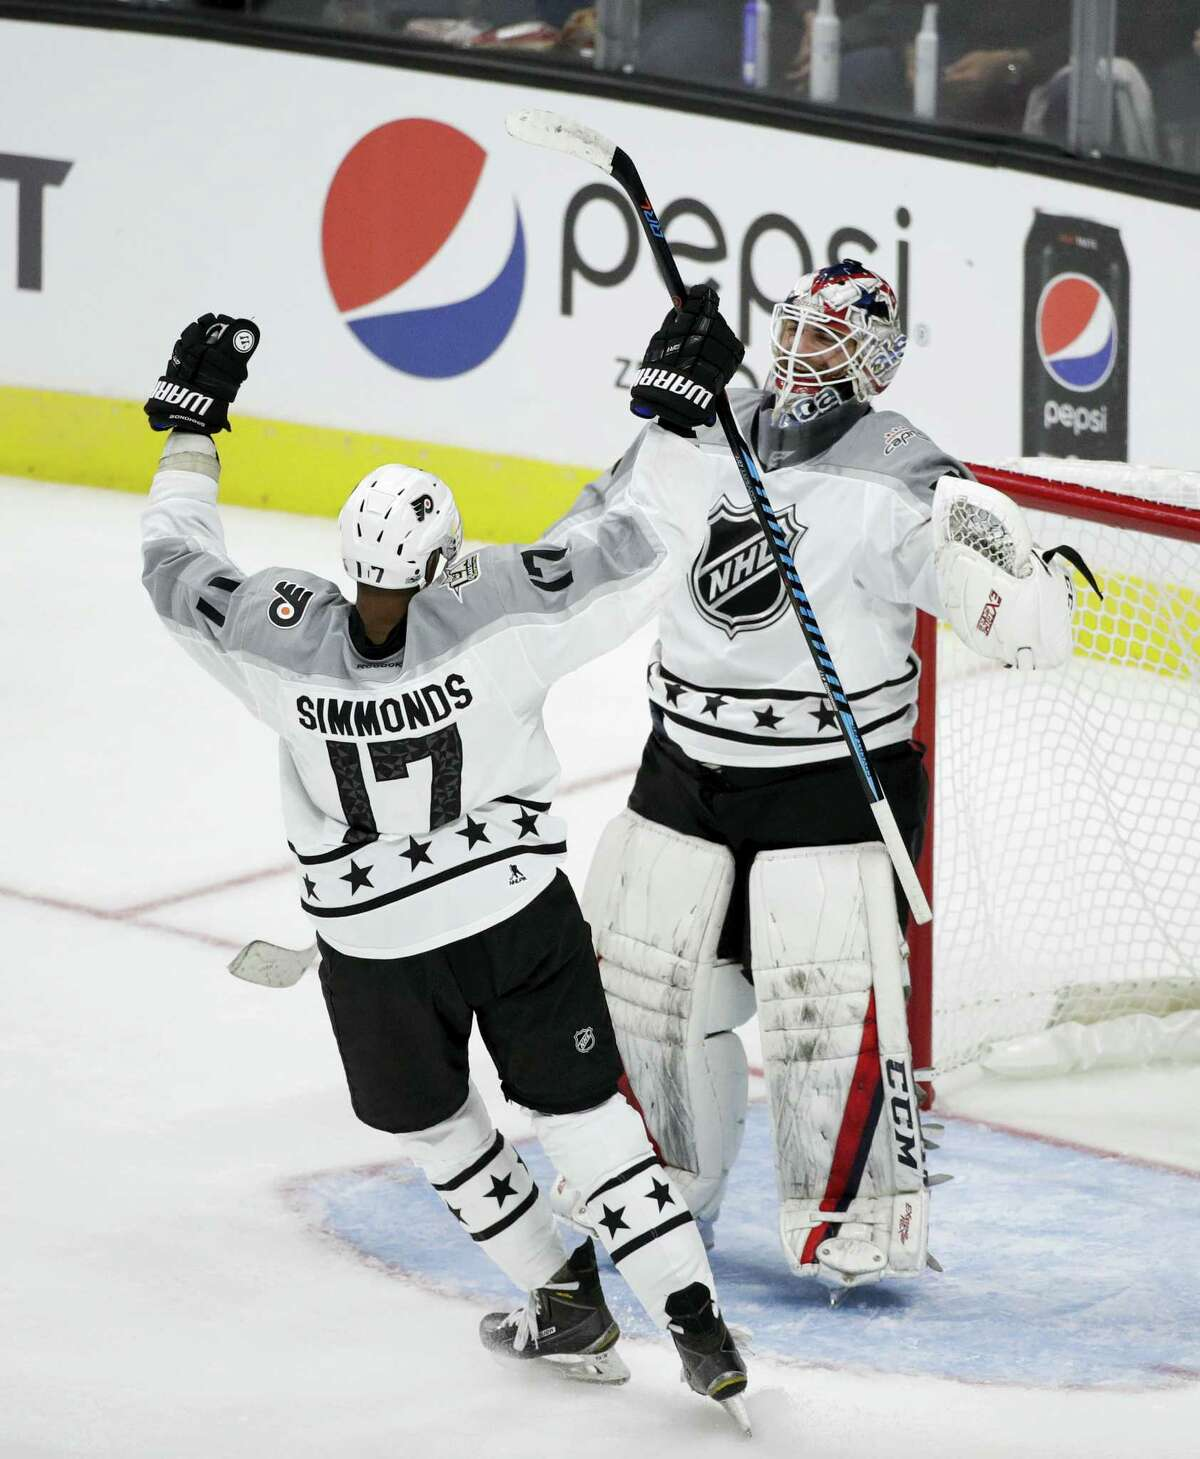 Metropolitan Division's Wayne Simmonds, left, of the Philadelphia Flyers, and goalie Braden Holtby, of the Washington Capitals, celebrate their team's win in the NHL All-Star Game on Sunday in Los Angeles.